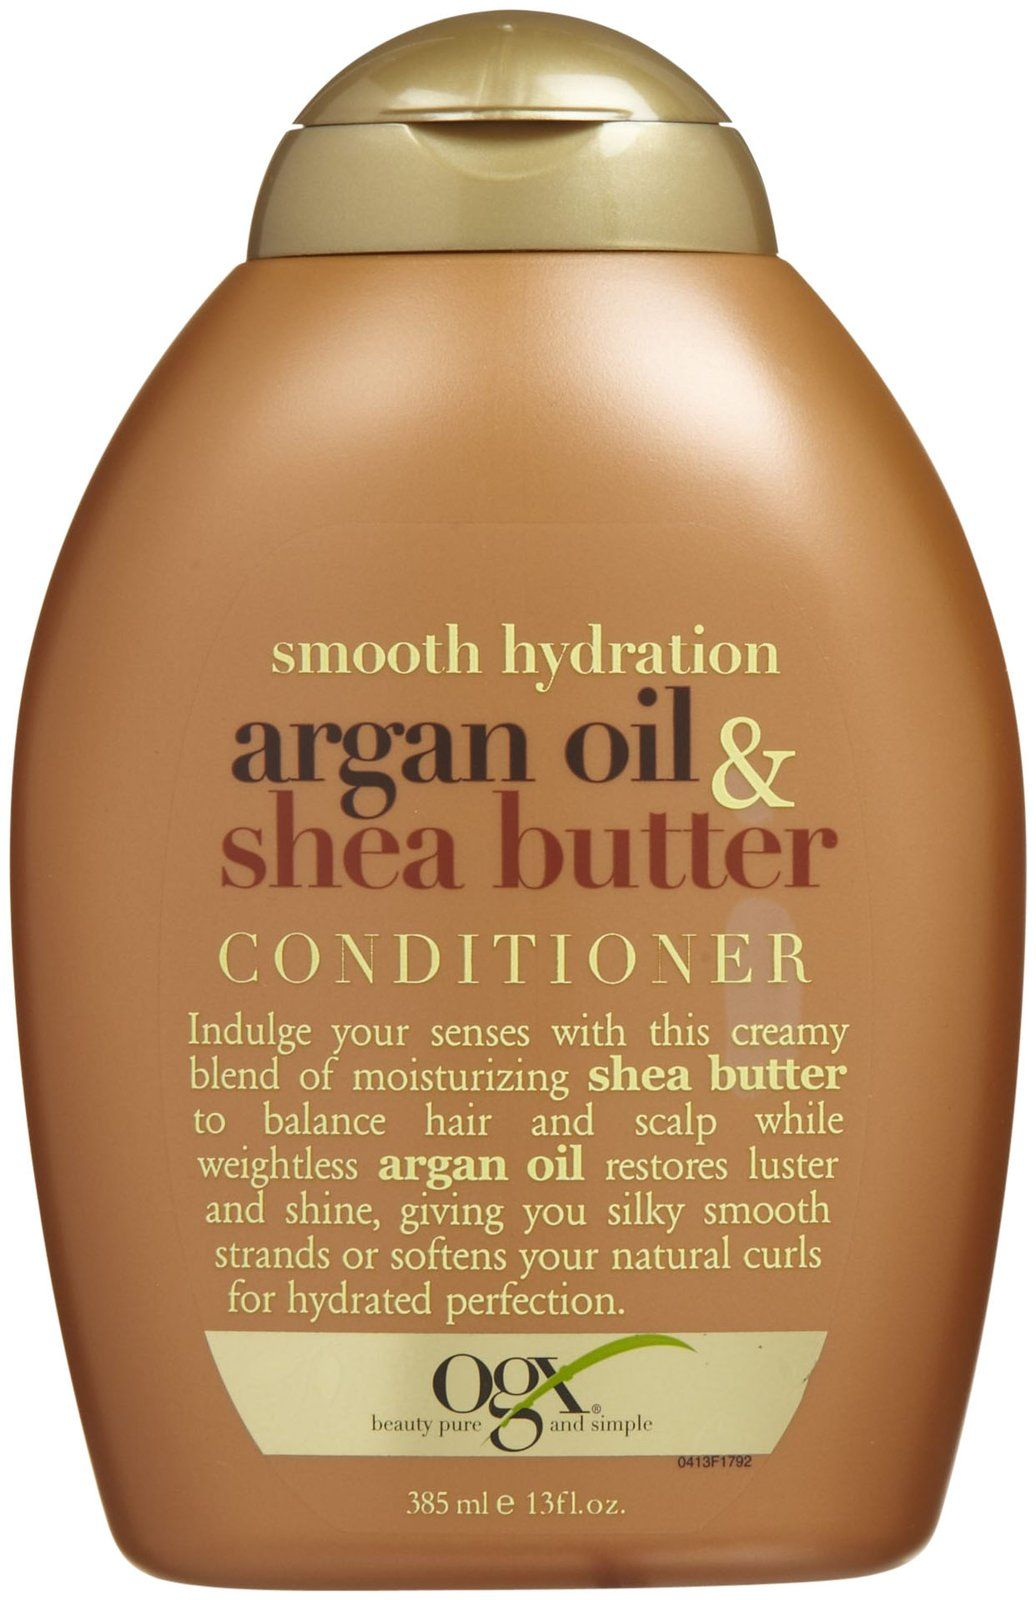 Ogx Smooth Hydration Argan Oil & Shea Butter Conditioner